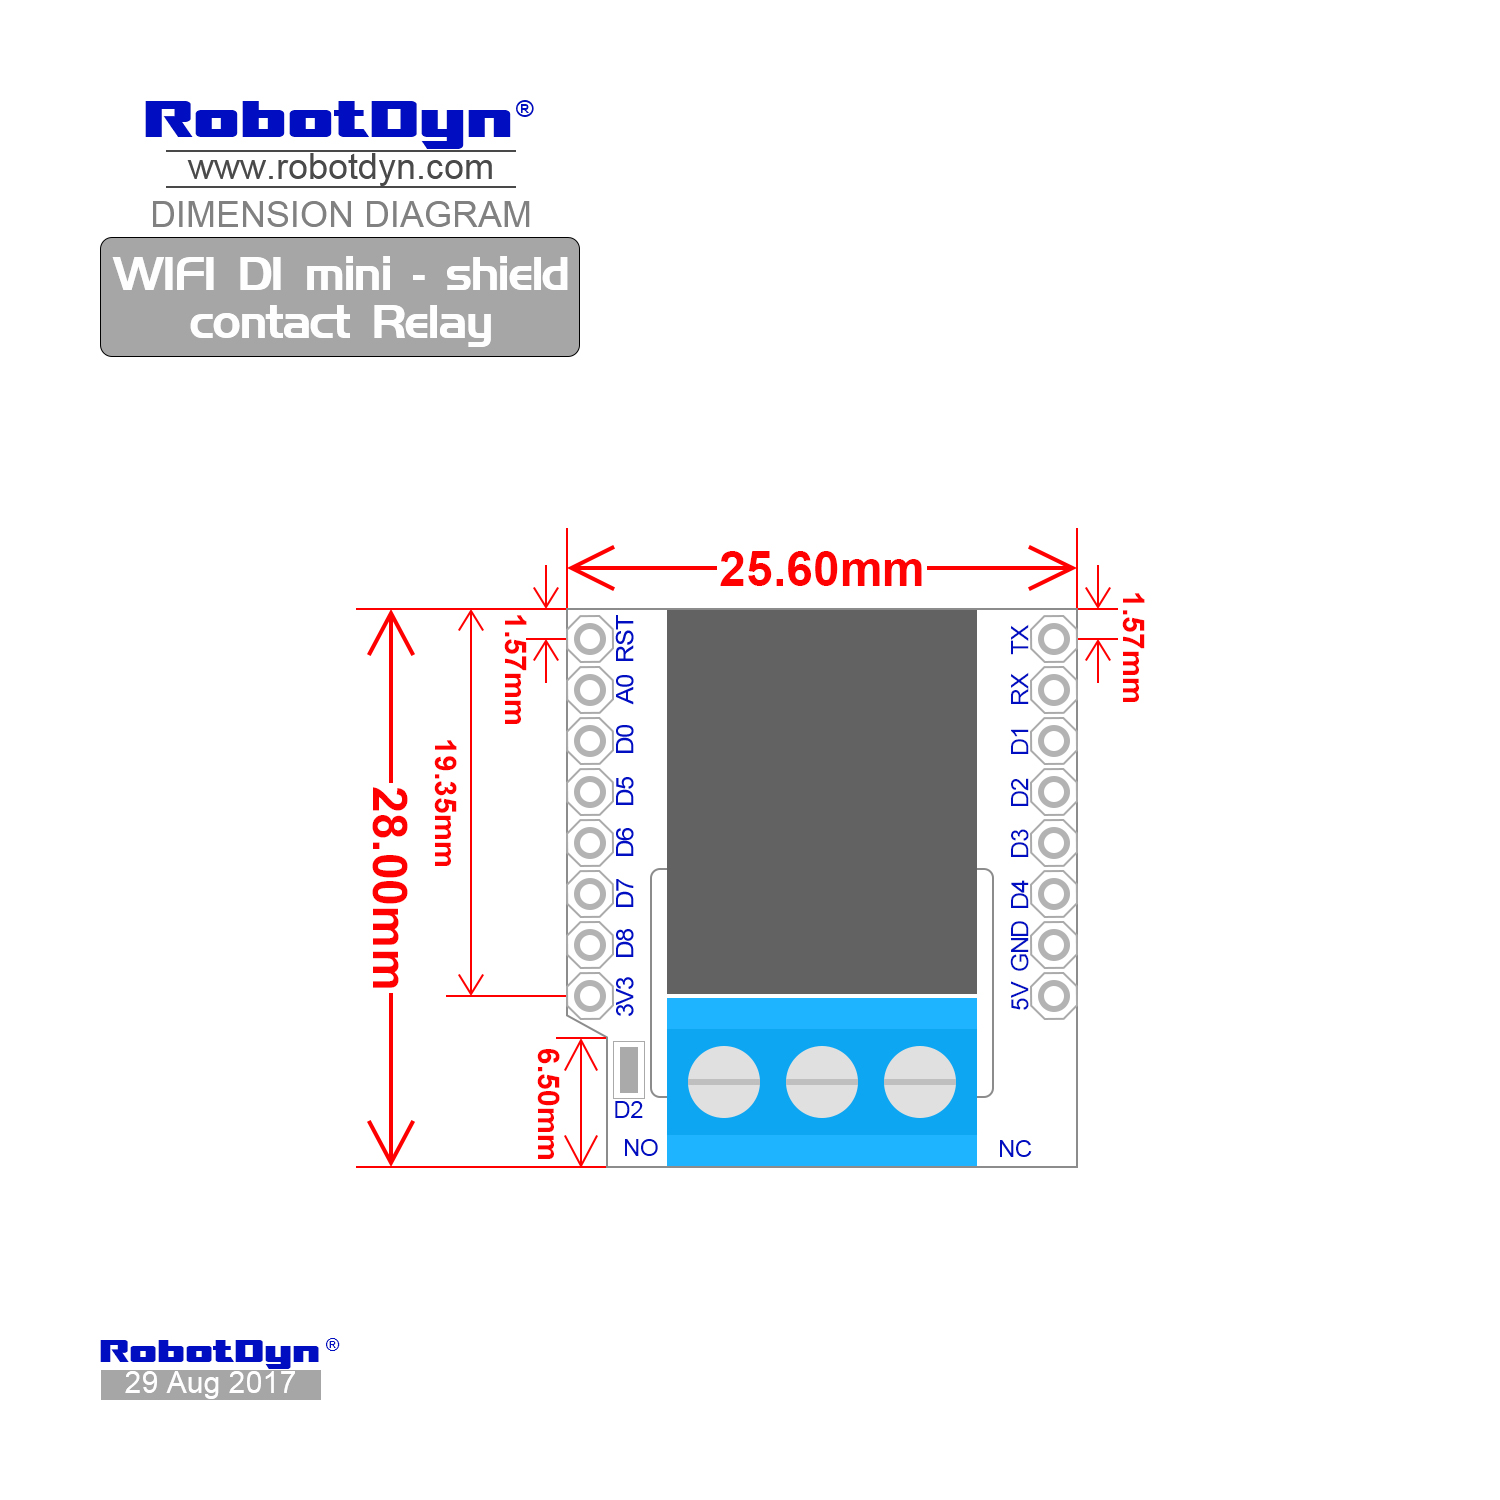 Wifi D1 Mini Shield Contact Relay With No And Nc Contacts Dimensions